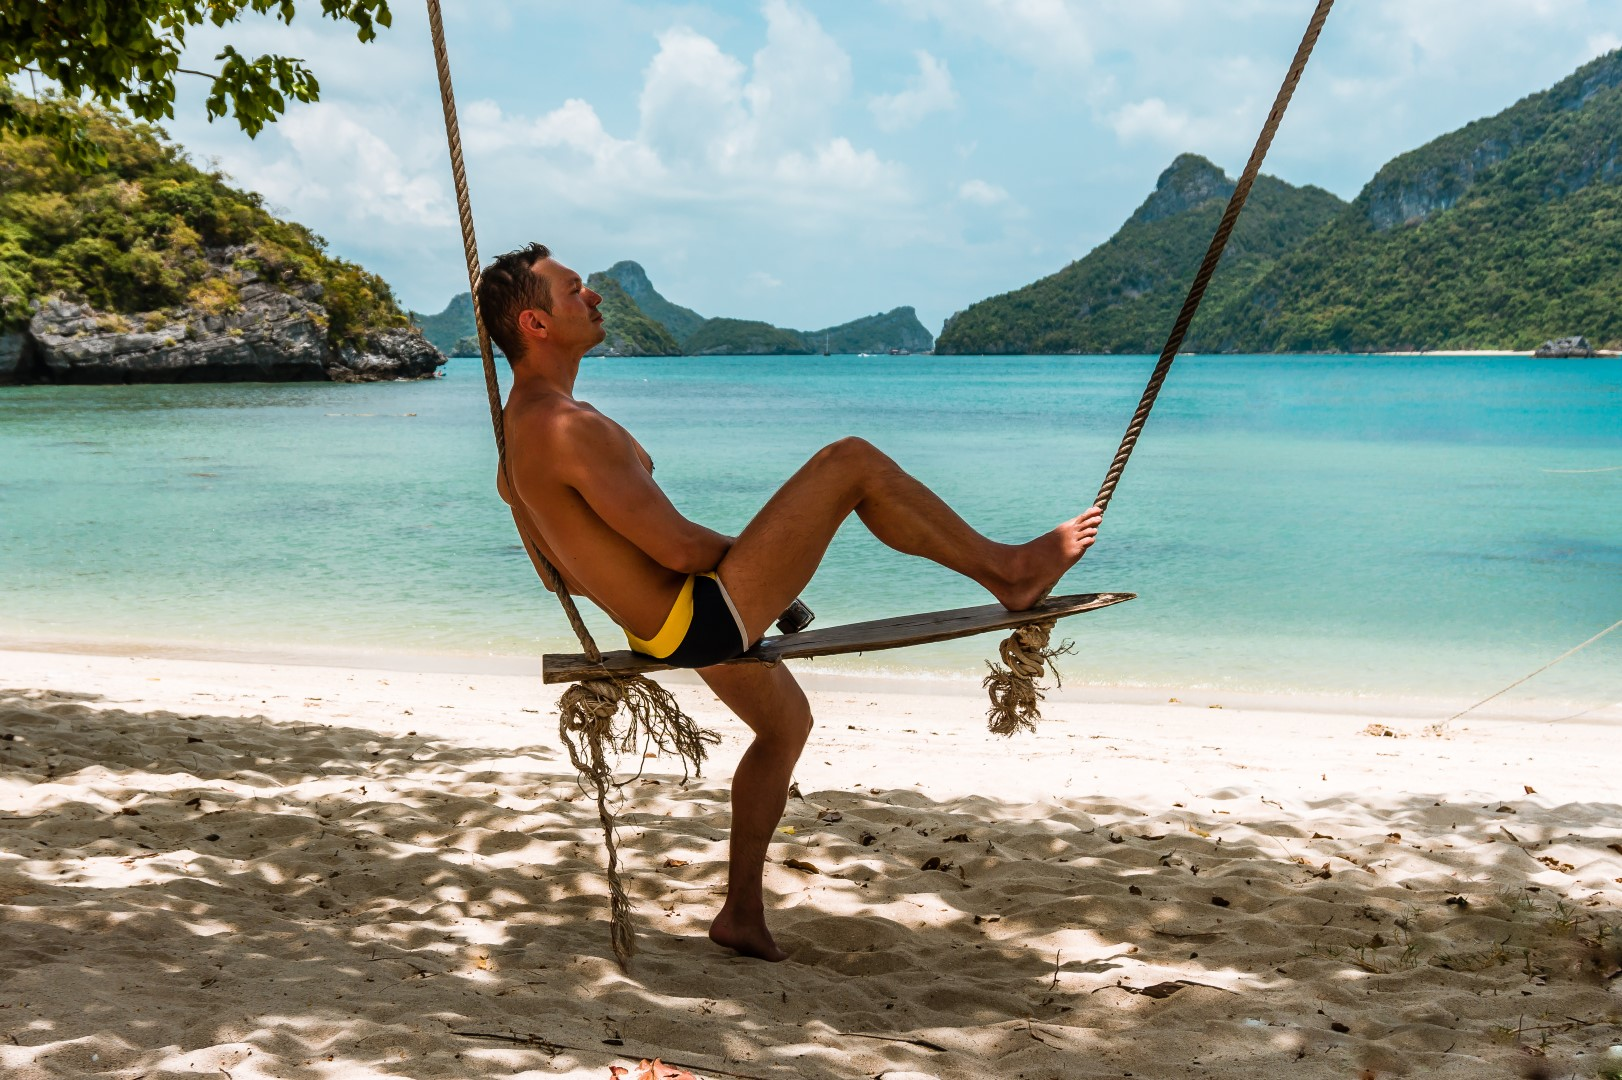 Did you know that Thailand is home to 5 stunning Gay Beaches? Check them out here!